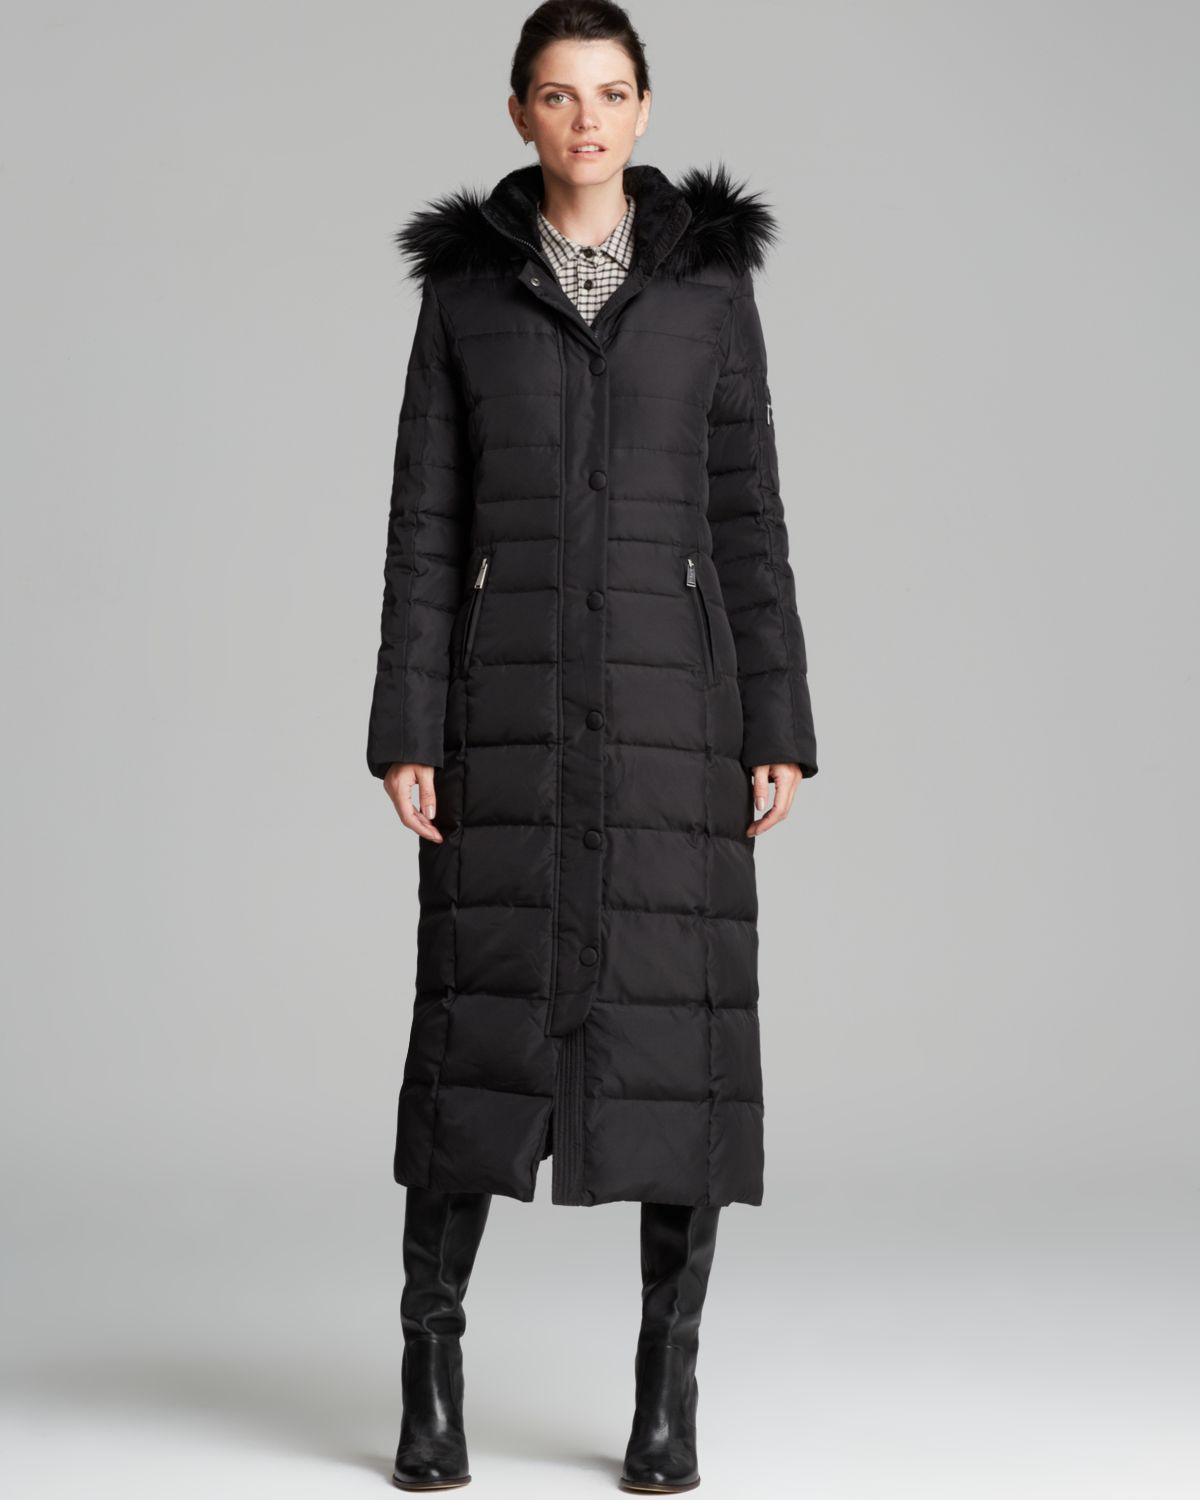 Dkny Down Coat - Faux Fur Trim Maxi in Black | Lyst